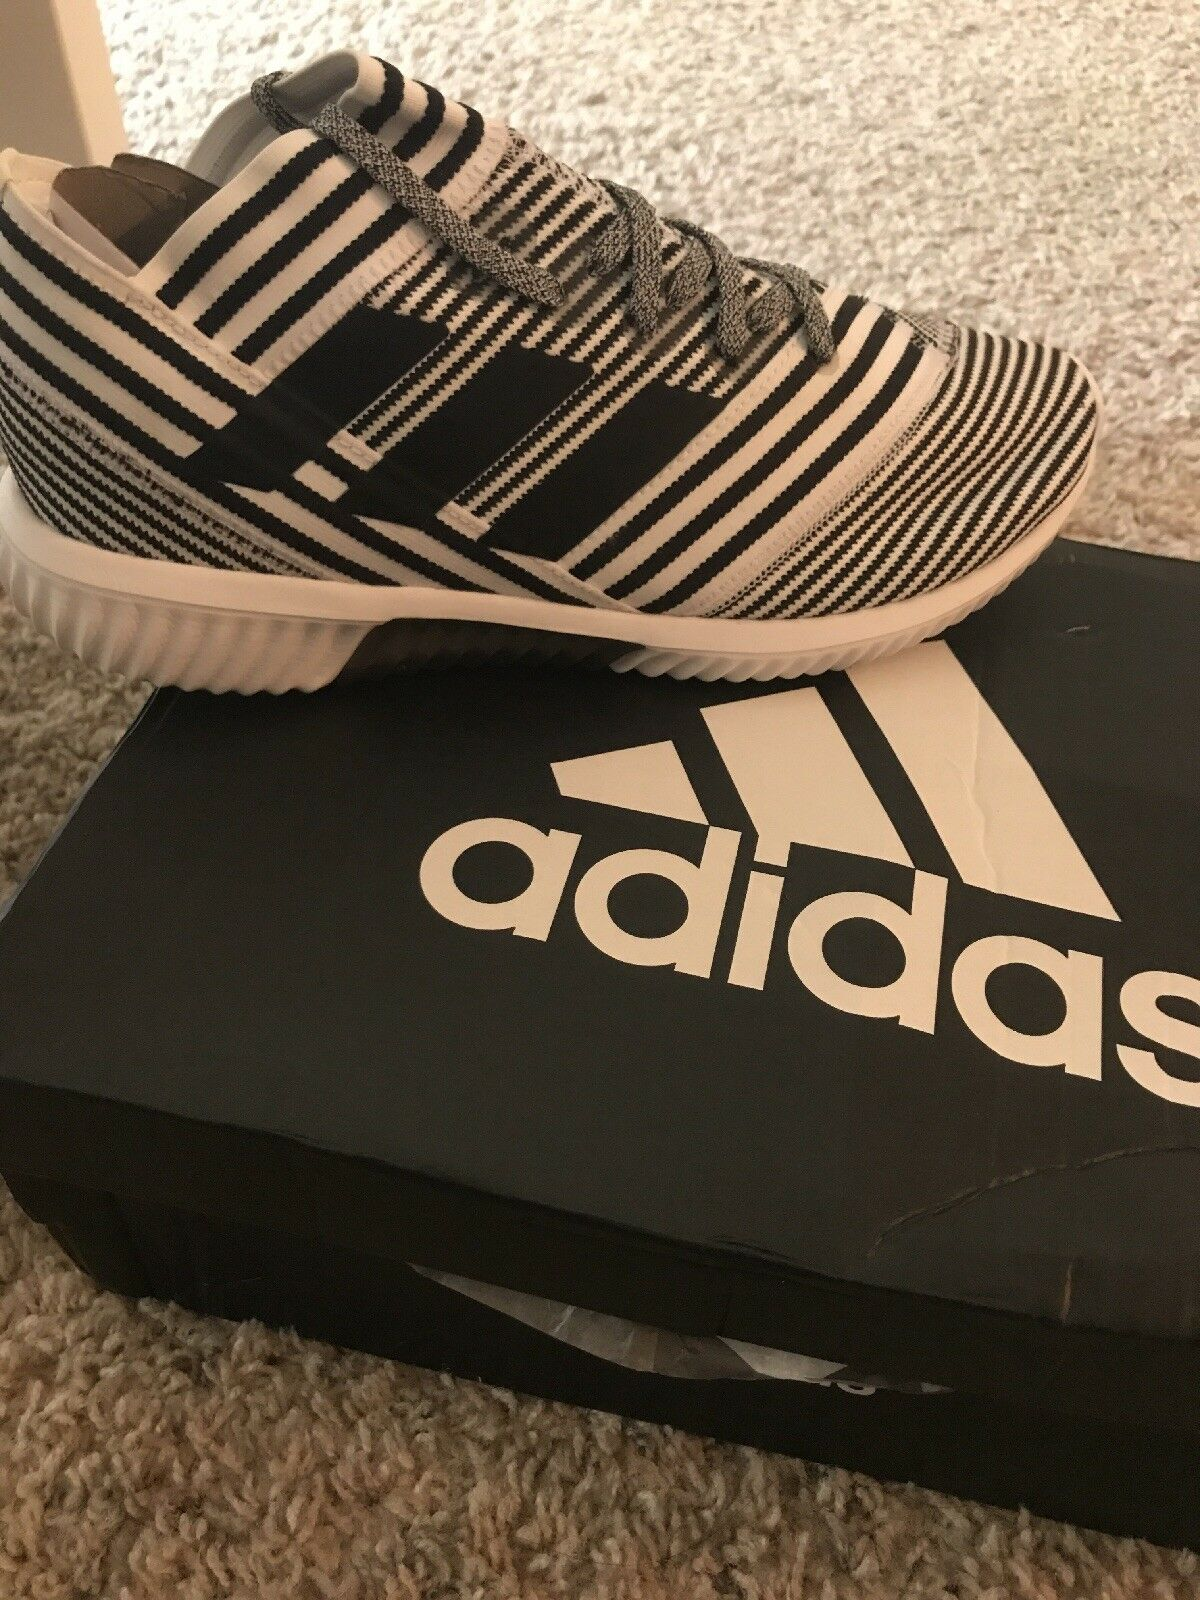 Cheap Nice adidas mens shoes 8.5 on the sale